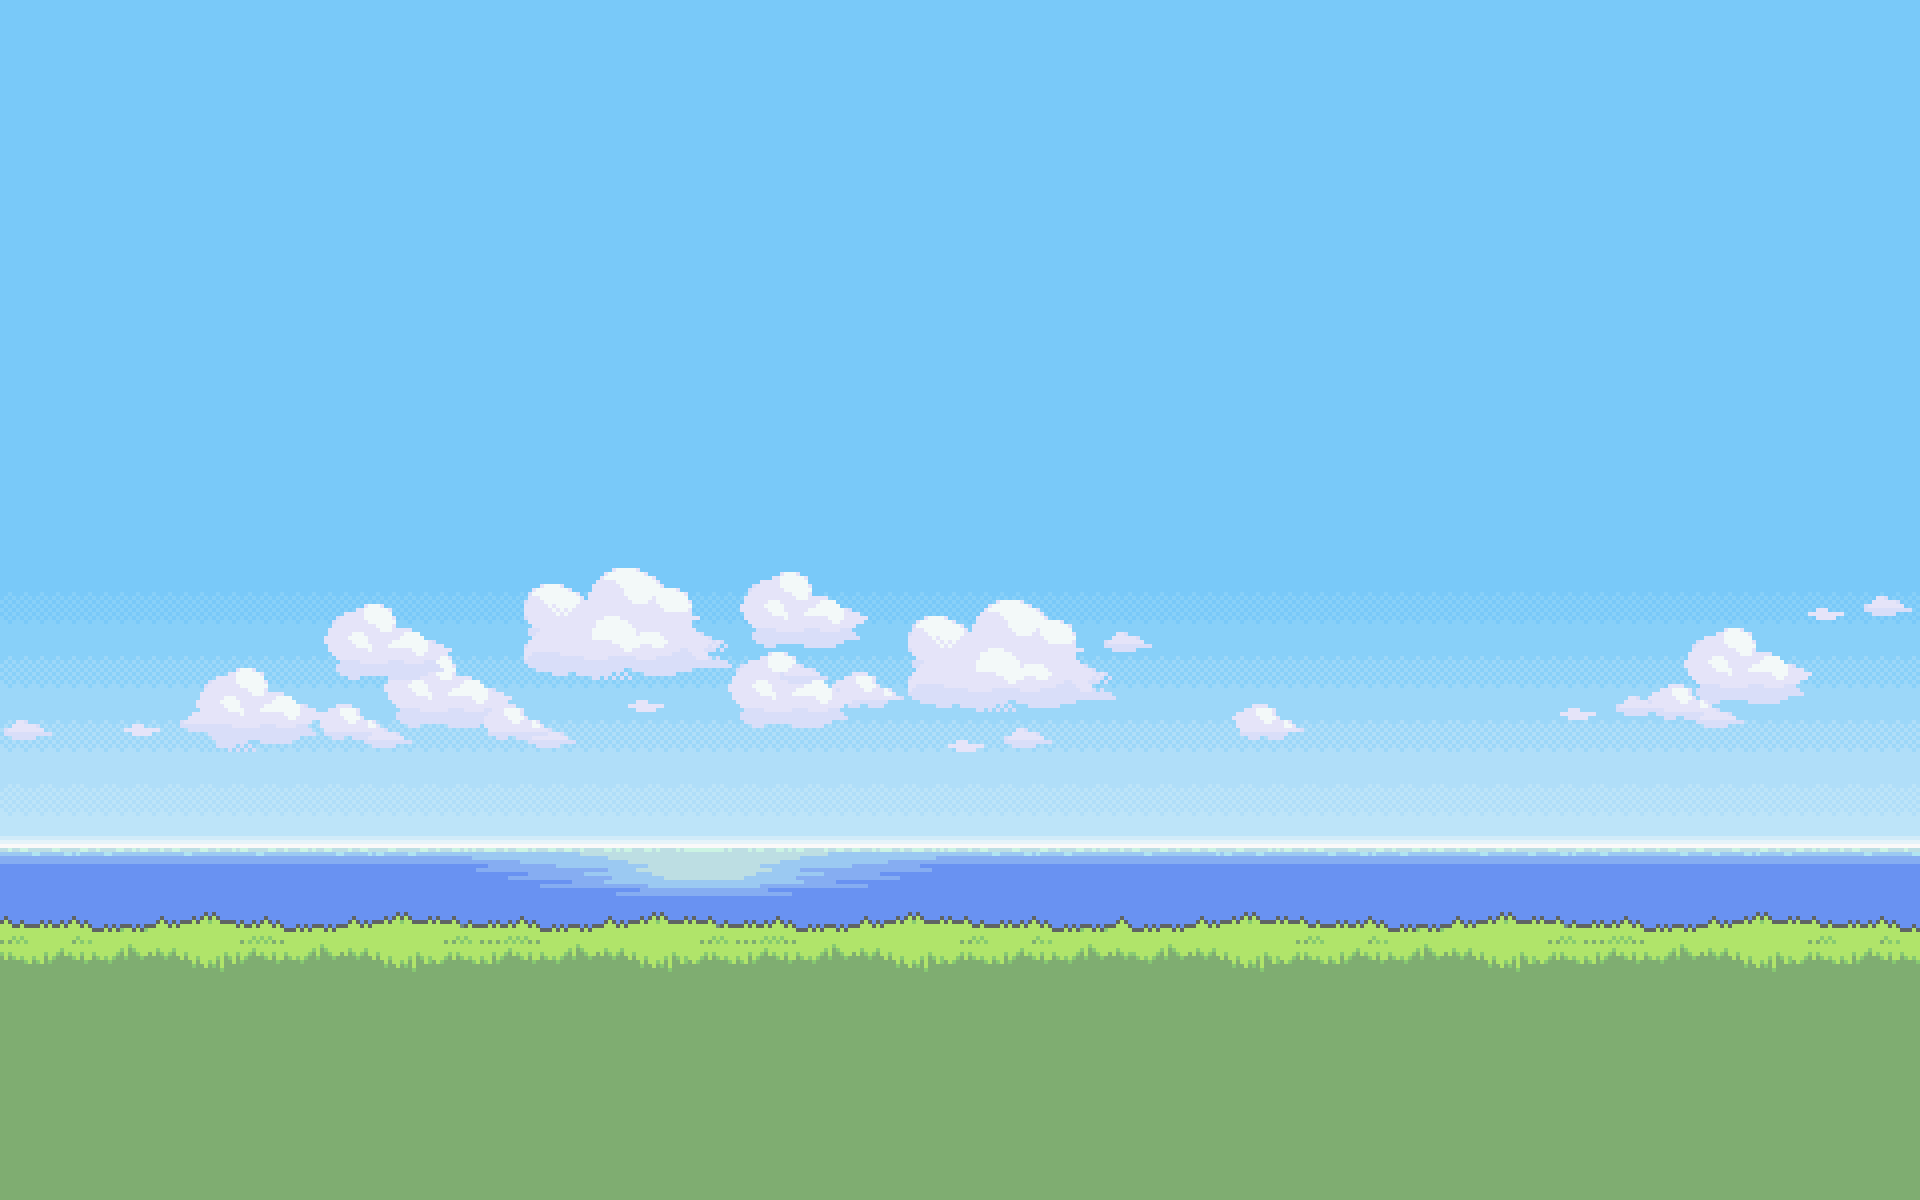 16 bit green beach wallpaper